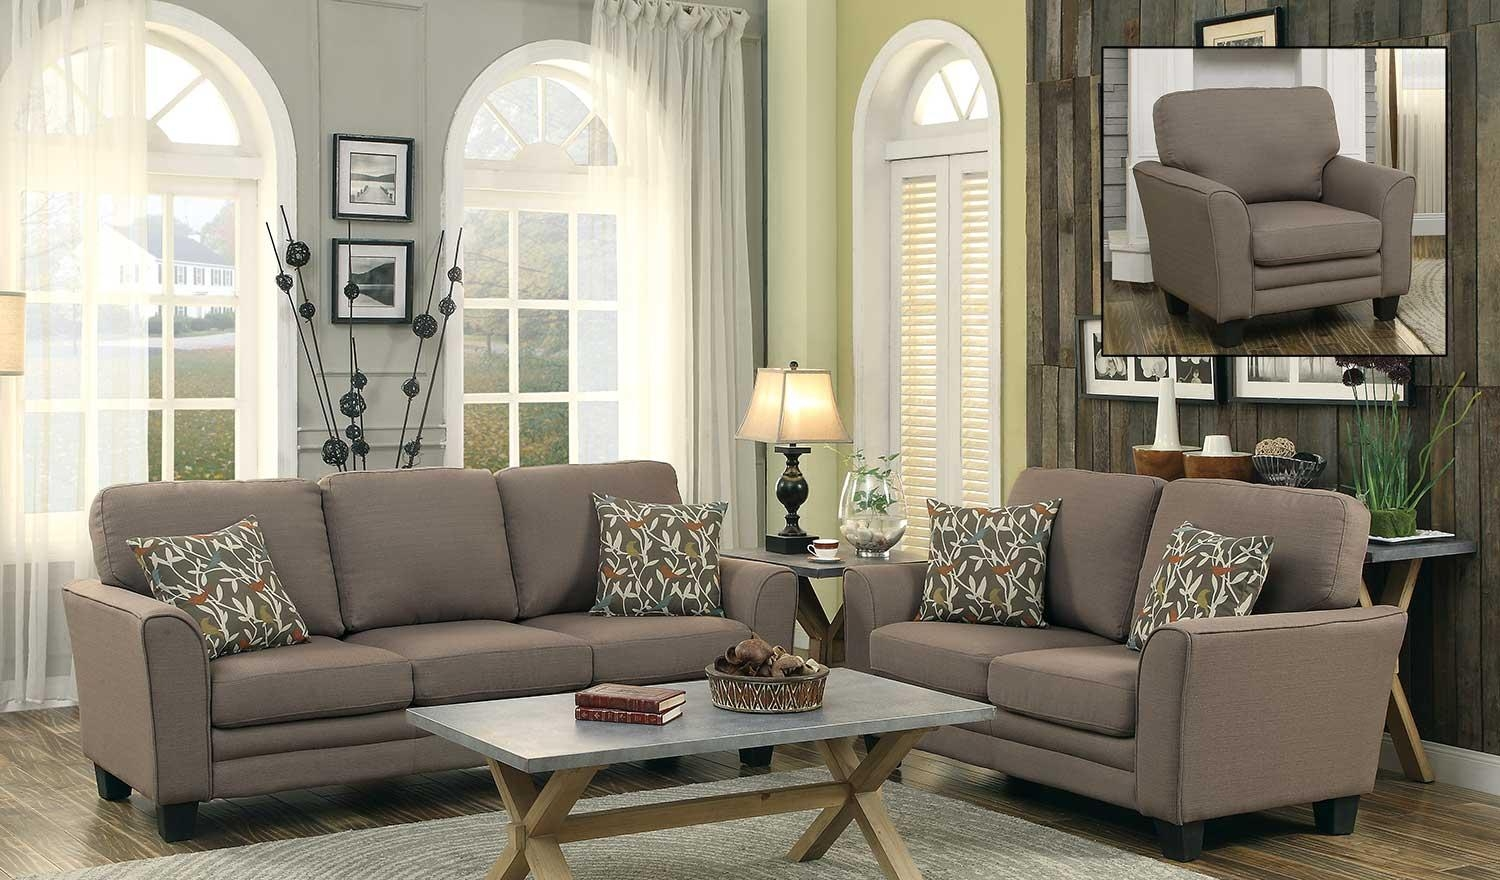 Homelegance Adair Sofa Set – Grey 8413Gy Sofa Set Regarding Homelegance Sofas (View 5 of 20)